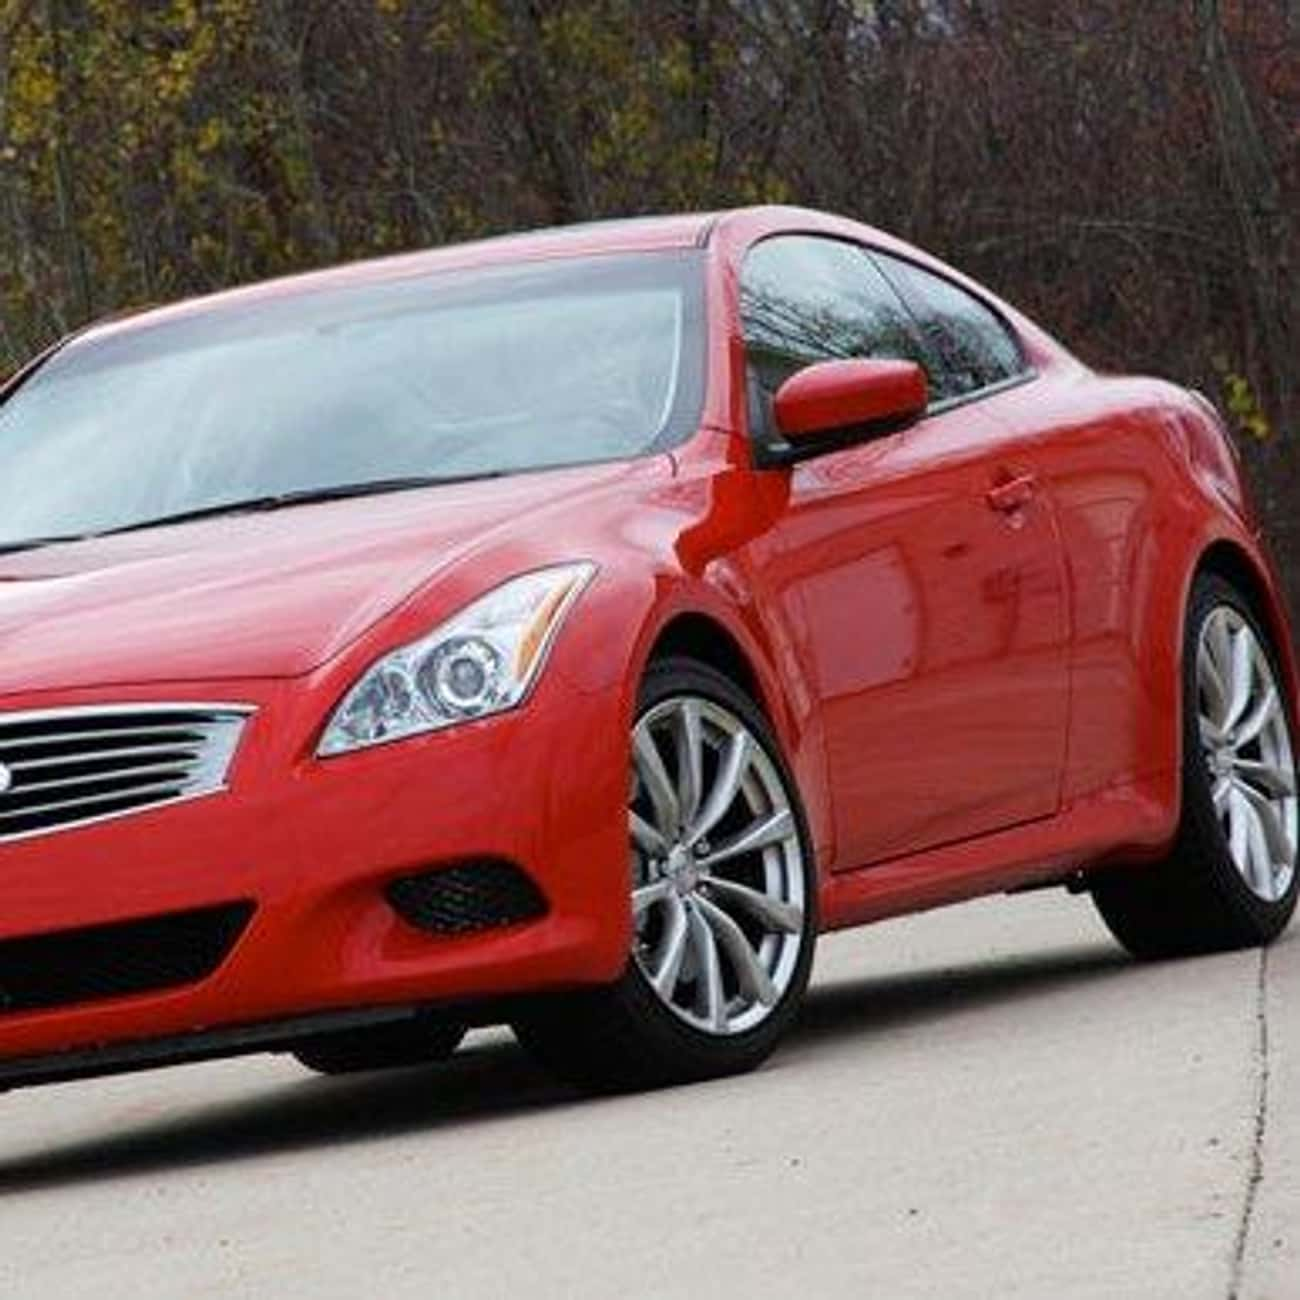 2009 Infiniti G37 Coupe is listed (or ranked) 4 on the list The Best Infiniti G37s of All Time